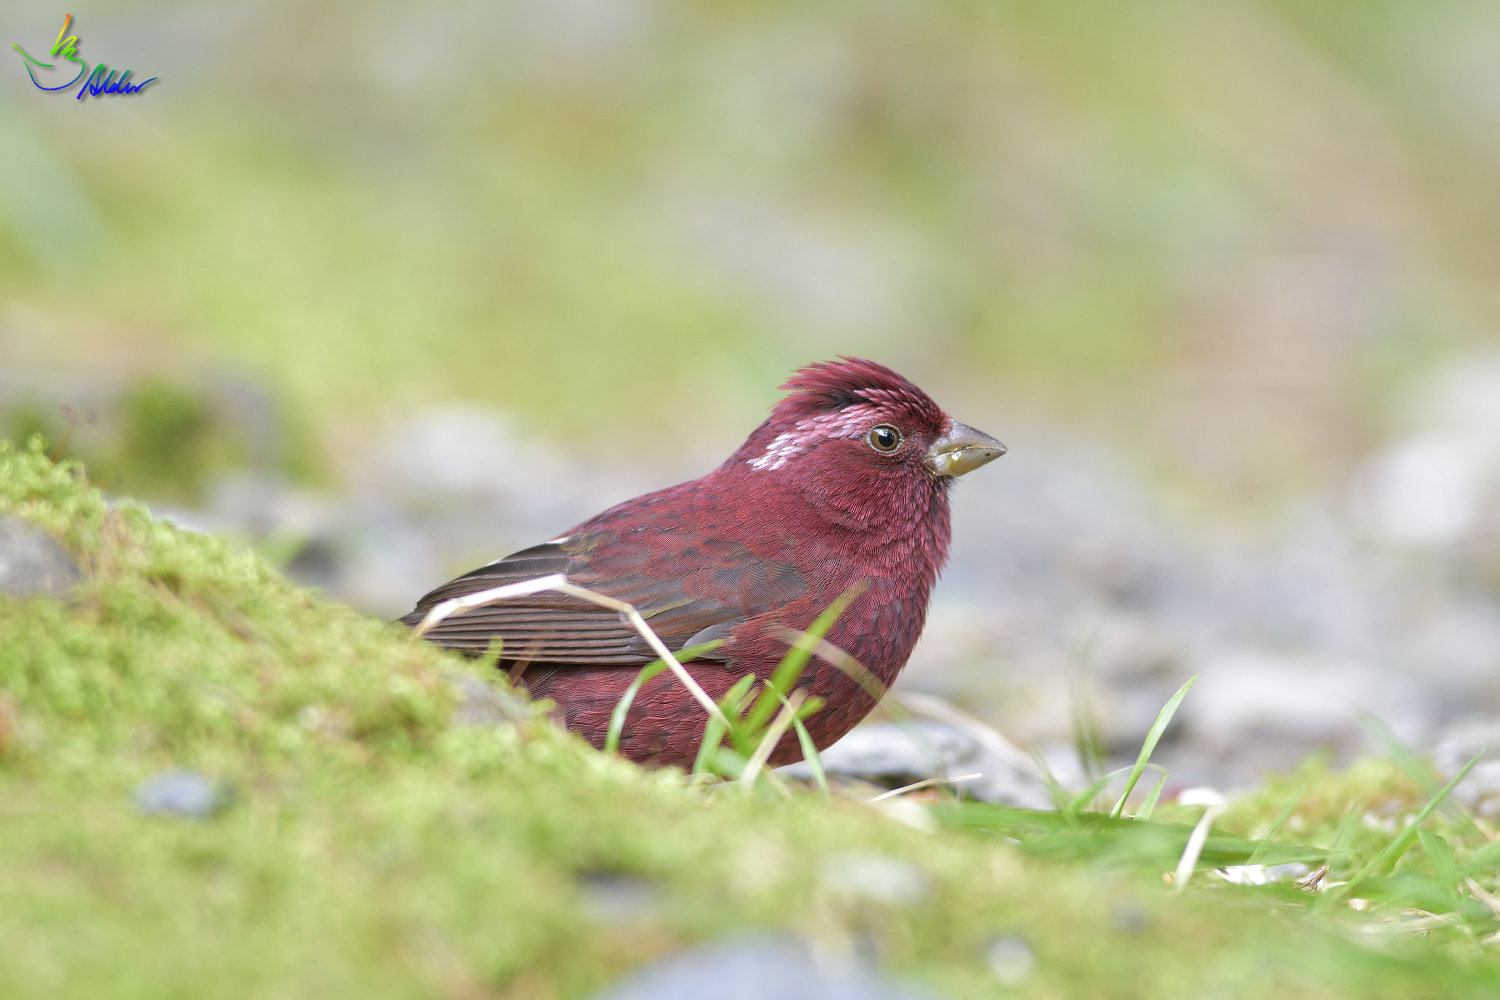 Vinacceus_Rose_Finch_5649